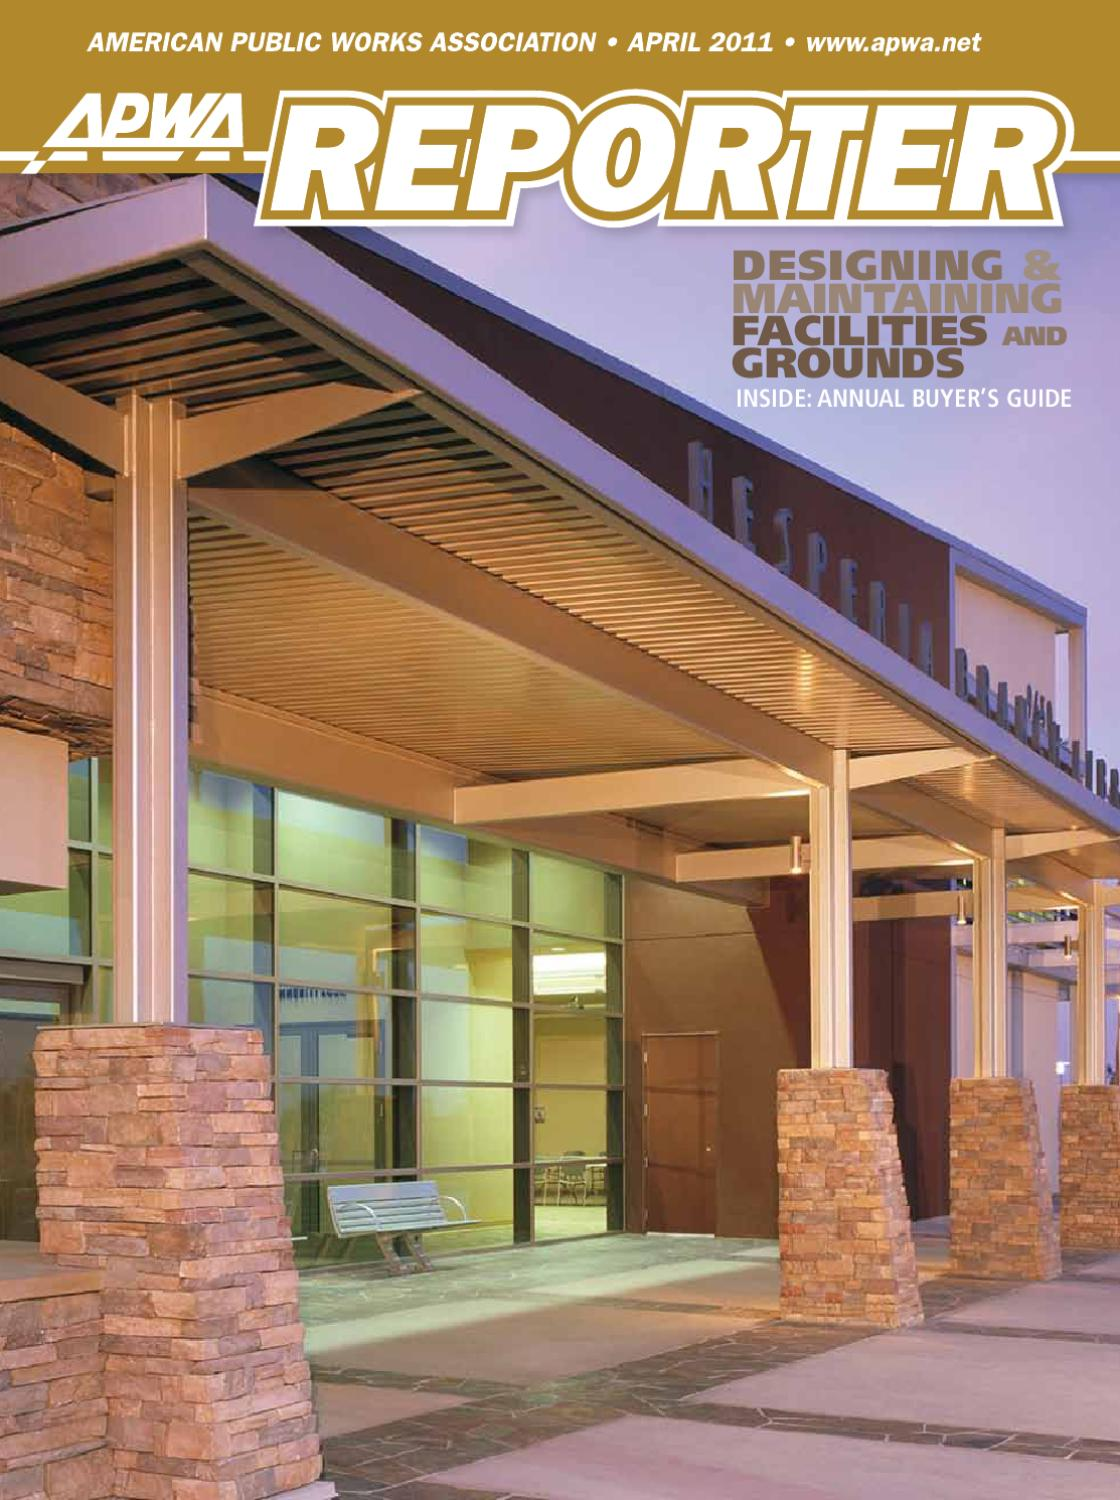 APWA Reporter, April 2011 issue by American Public Works Association ...